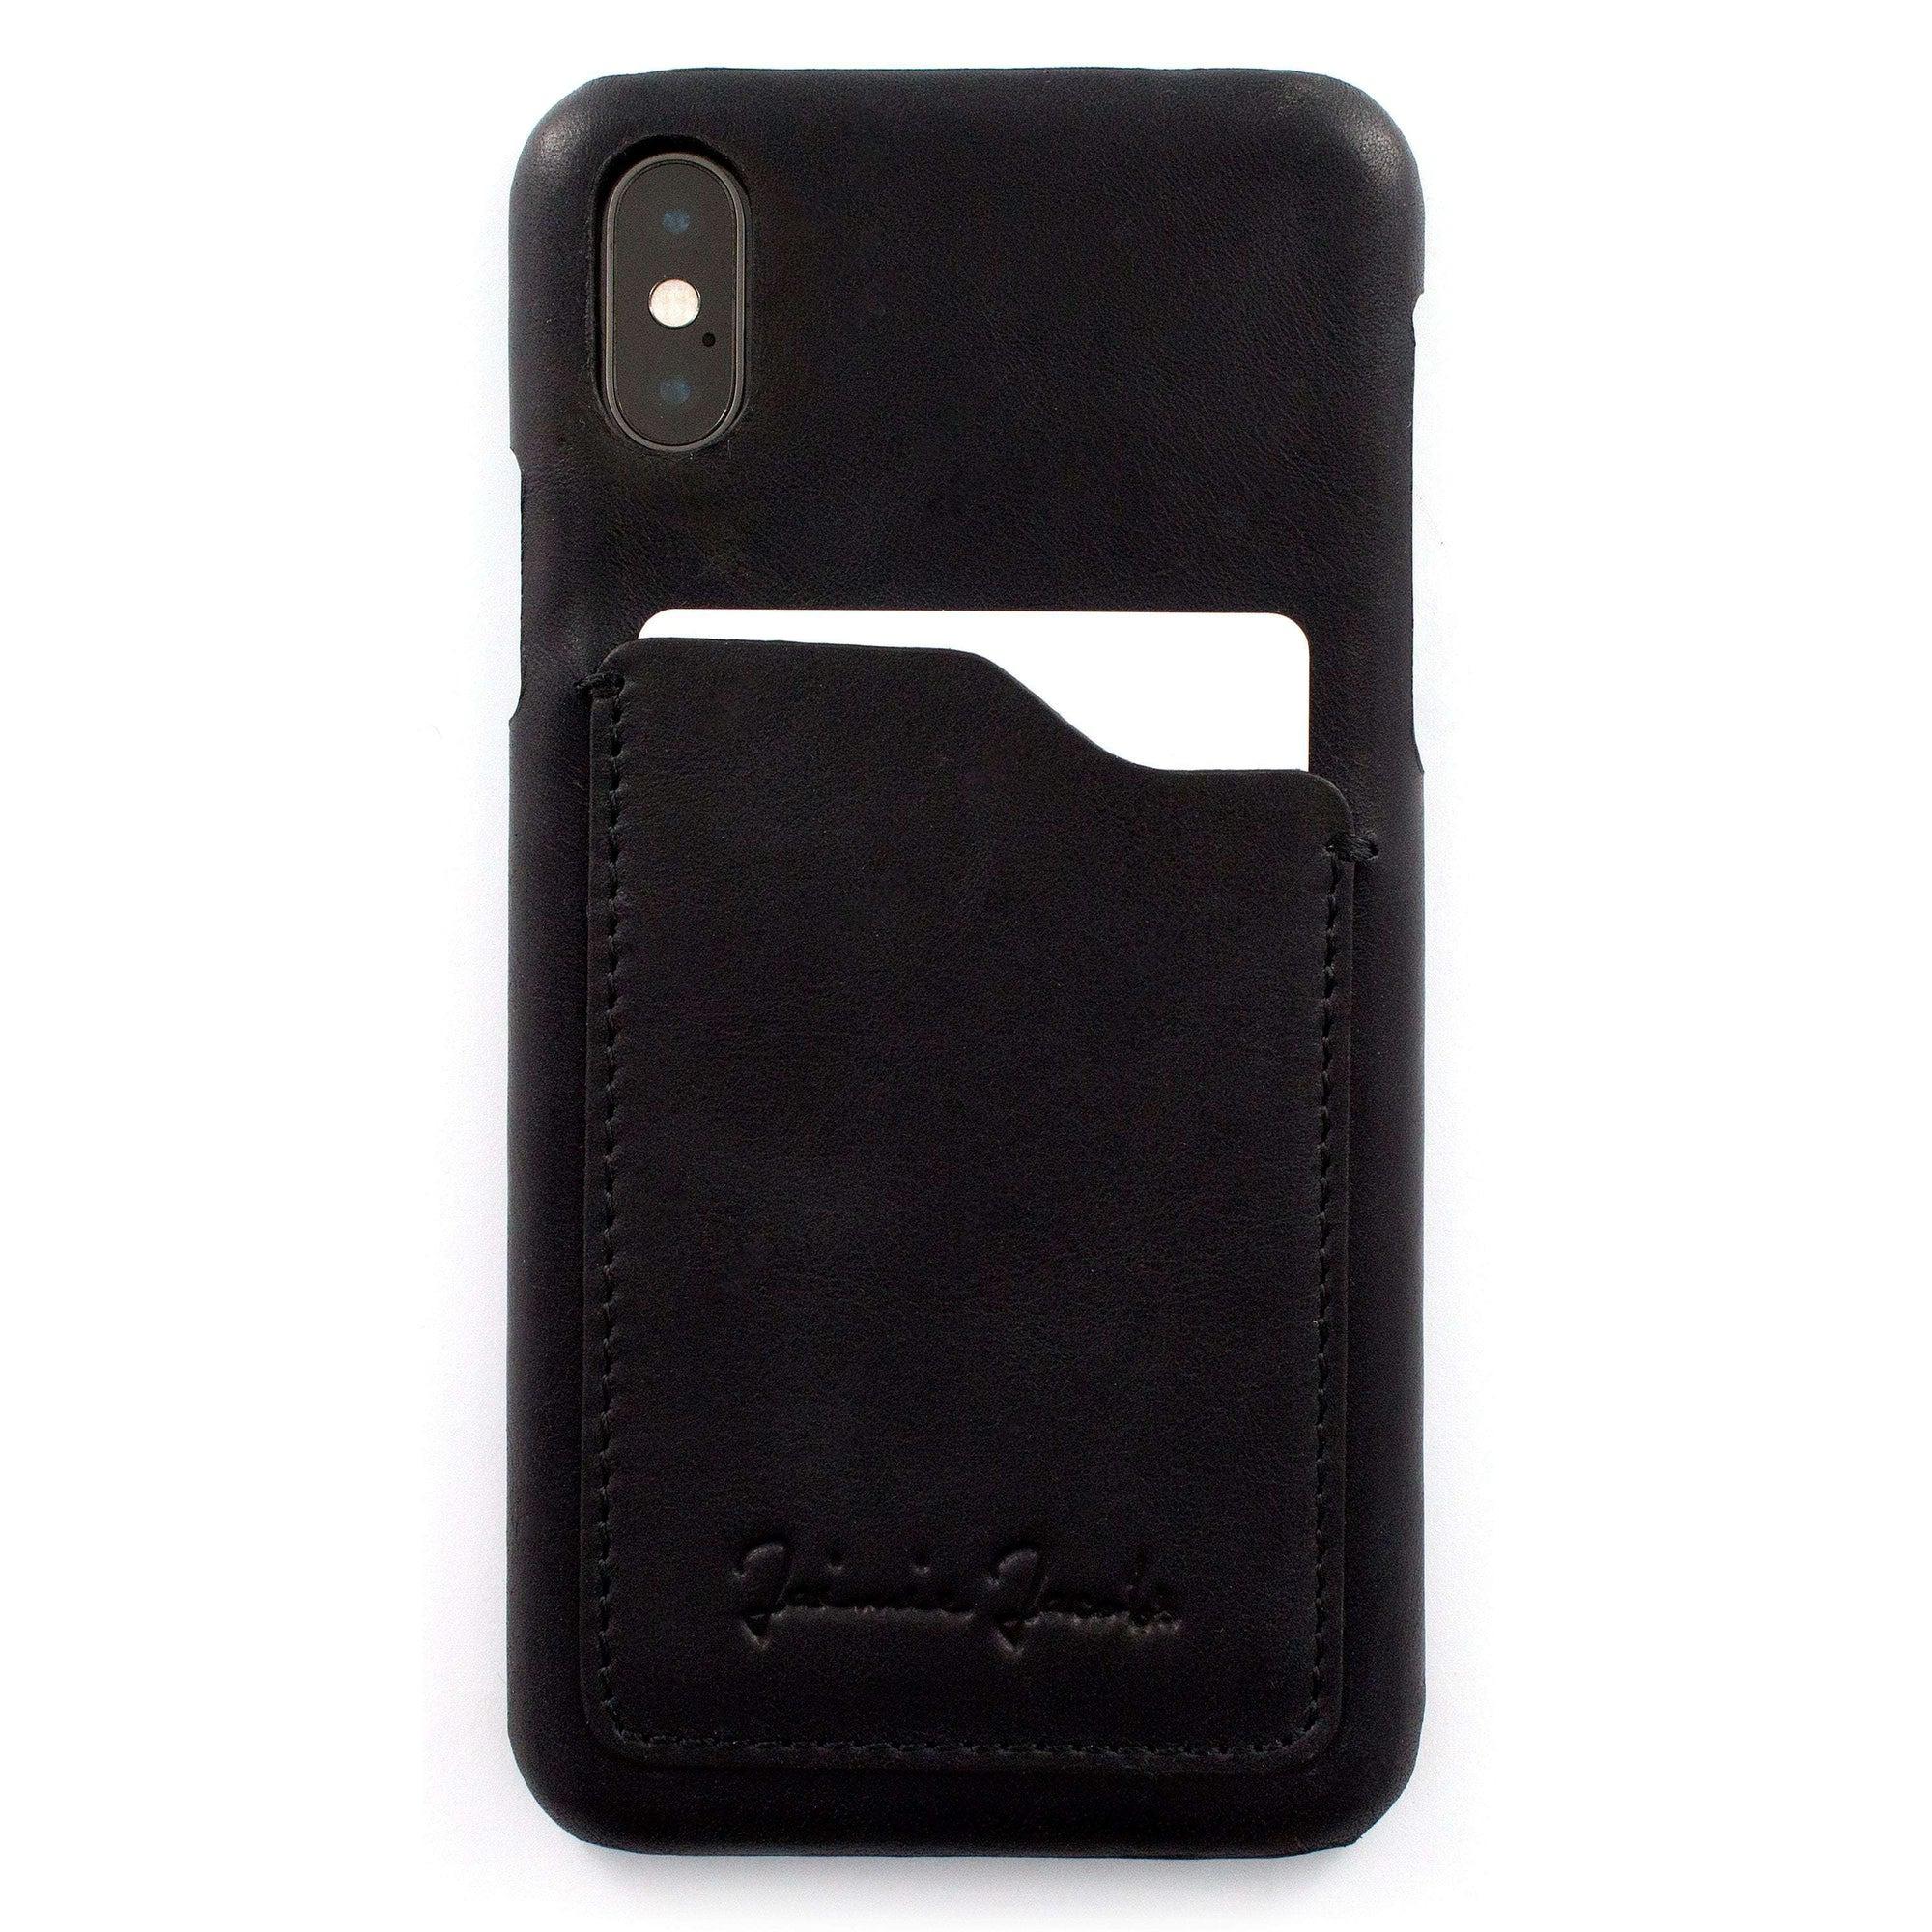 Jaimie Jacobs Phone Case Schwarz Phone Case for iPhone X & iPhone XS with Card Pocket jamy jamie jami jakobs